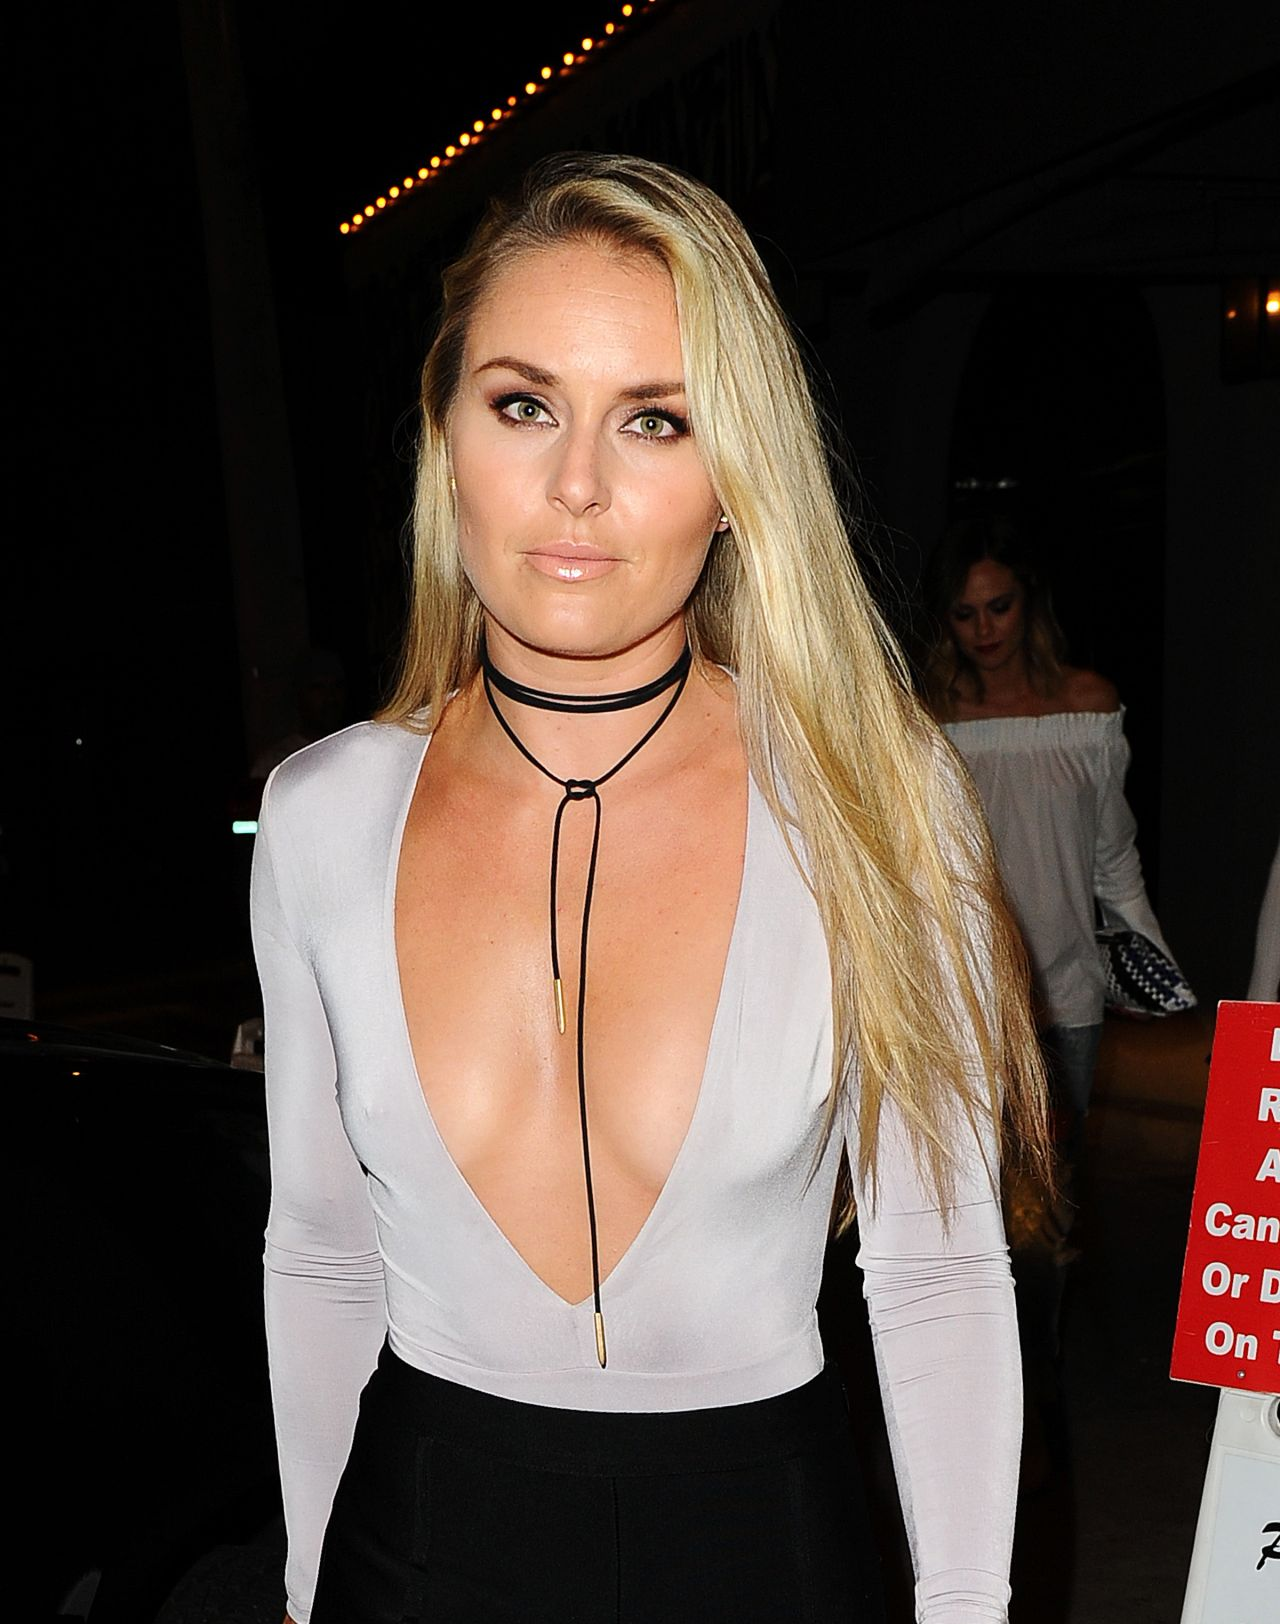 lindsey vonn night out style dines at craigs restaurant